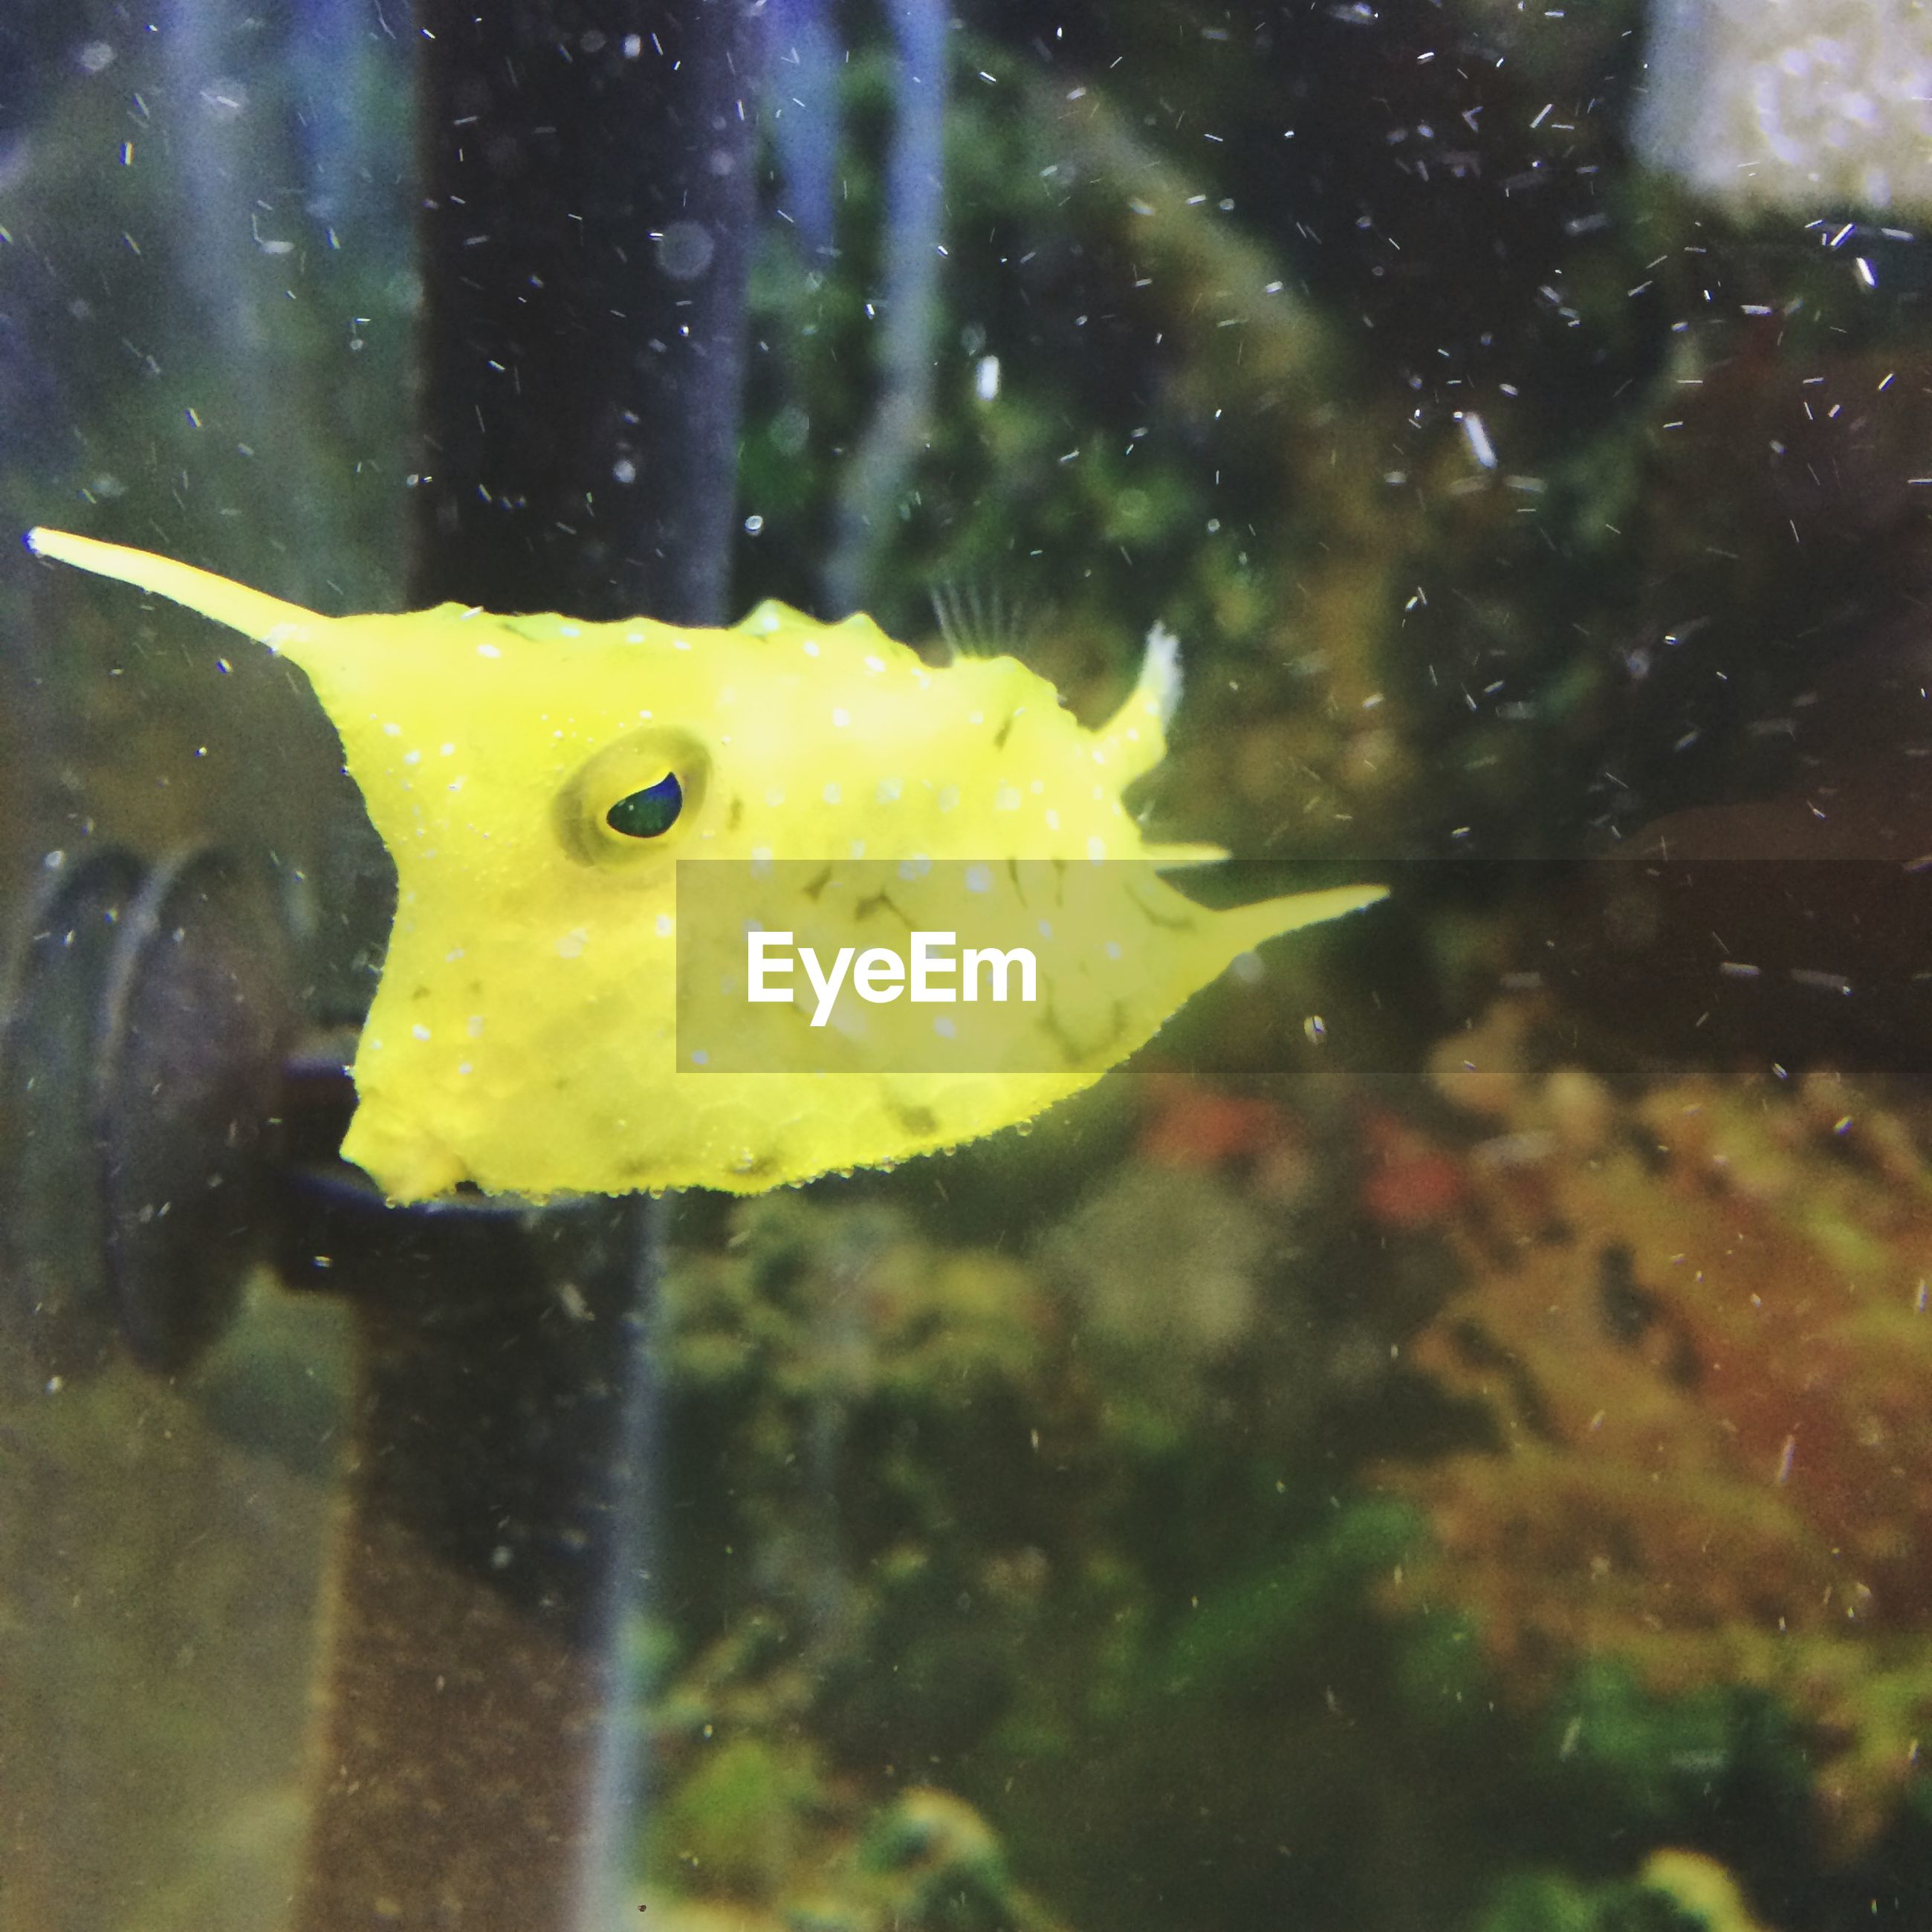 yellow, water, animal themes, underwater, close-up, one animal, animals in the wild, swimming, wildlife, fish, sea life, transparent, glass - material, nature, focus on foreground, aquarium, undersea, beauty in nature, no people, freshness